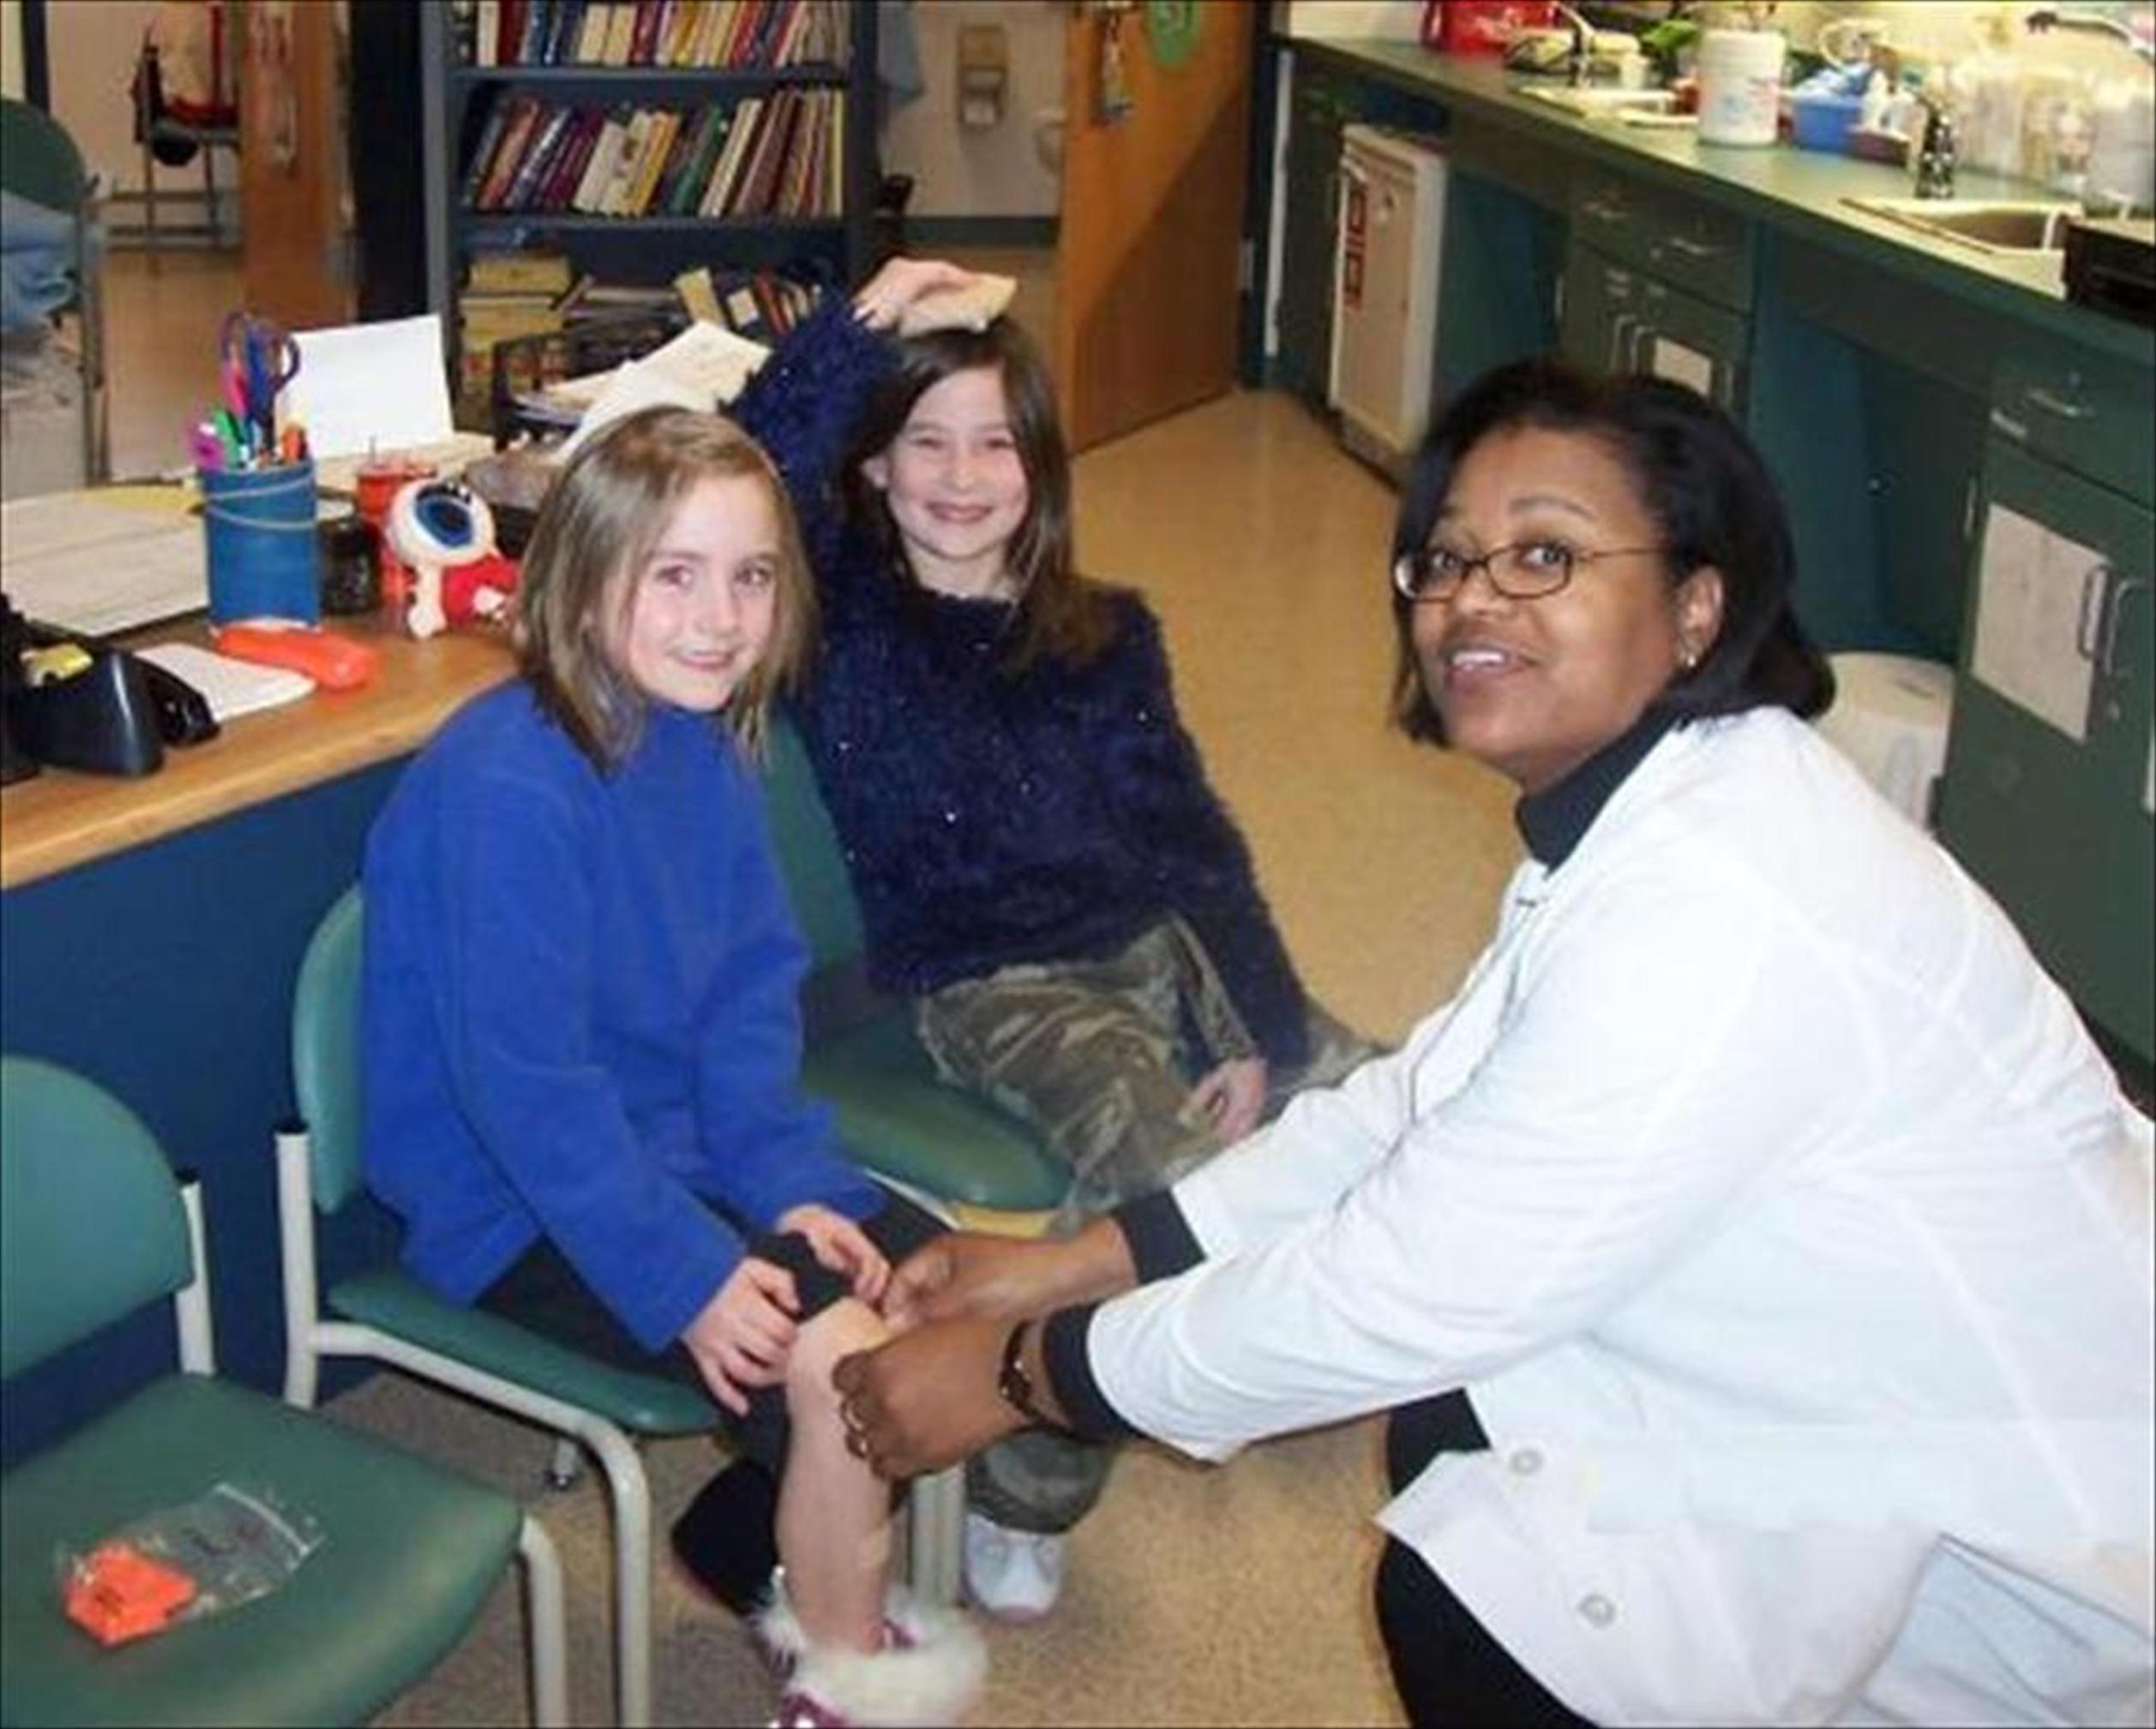 A nurse sits with 2 children and examines 1 of the children